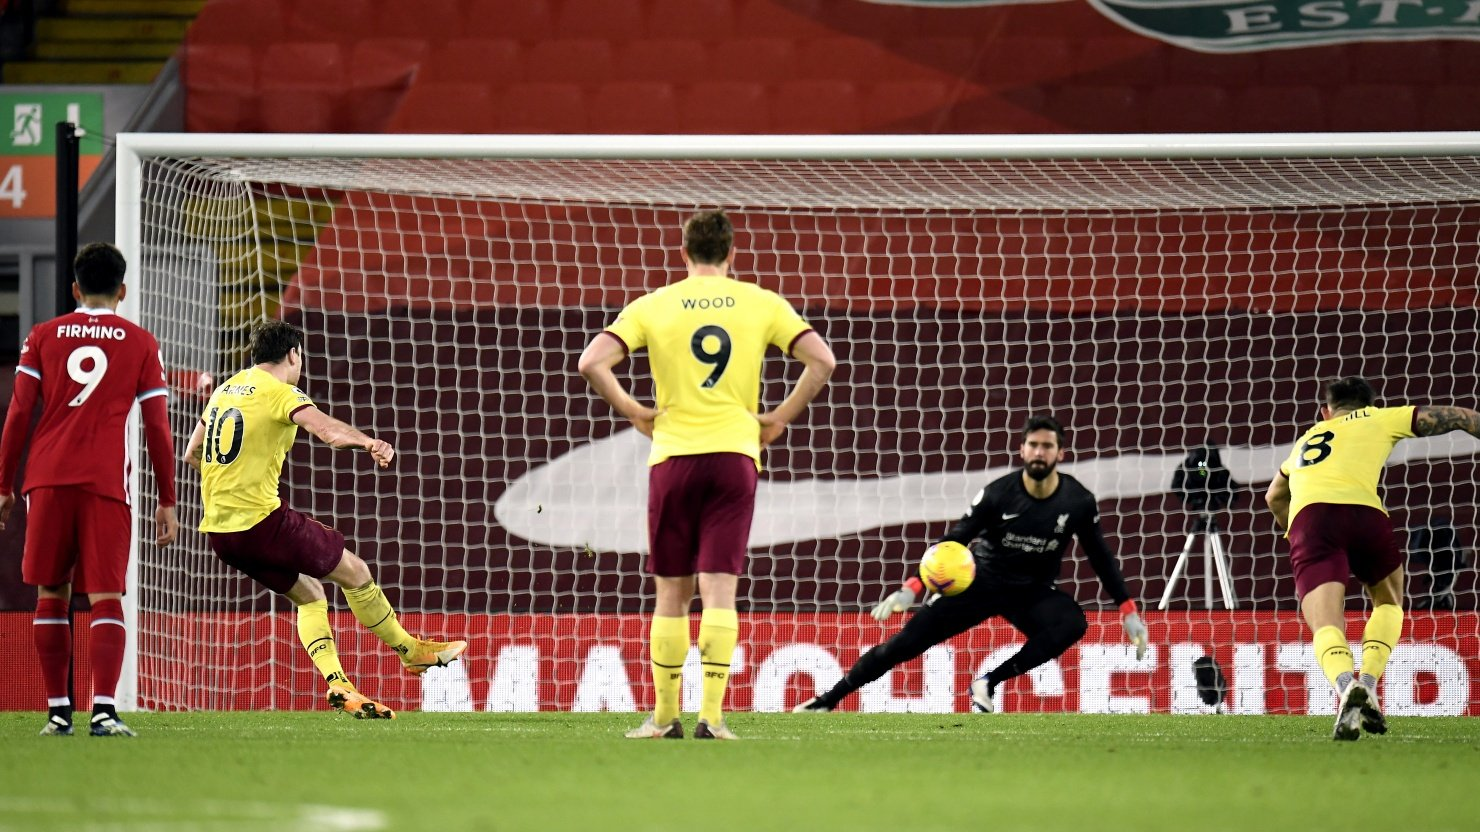 Momen tendangan penalti Ashley Barnes dalam laga Liverpool vs Burnley. (foto: twitter.com/BurnleyOfficial)